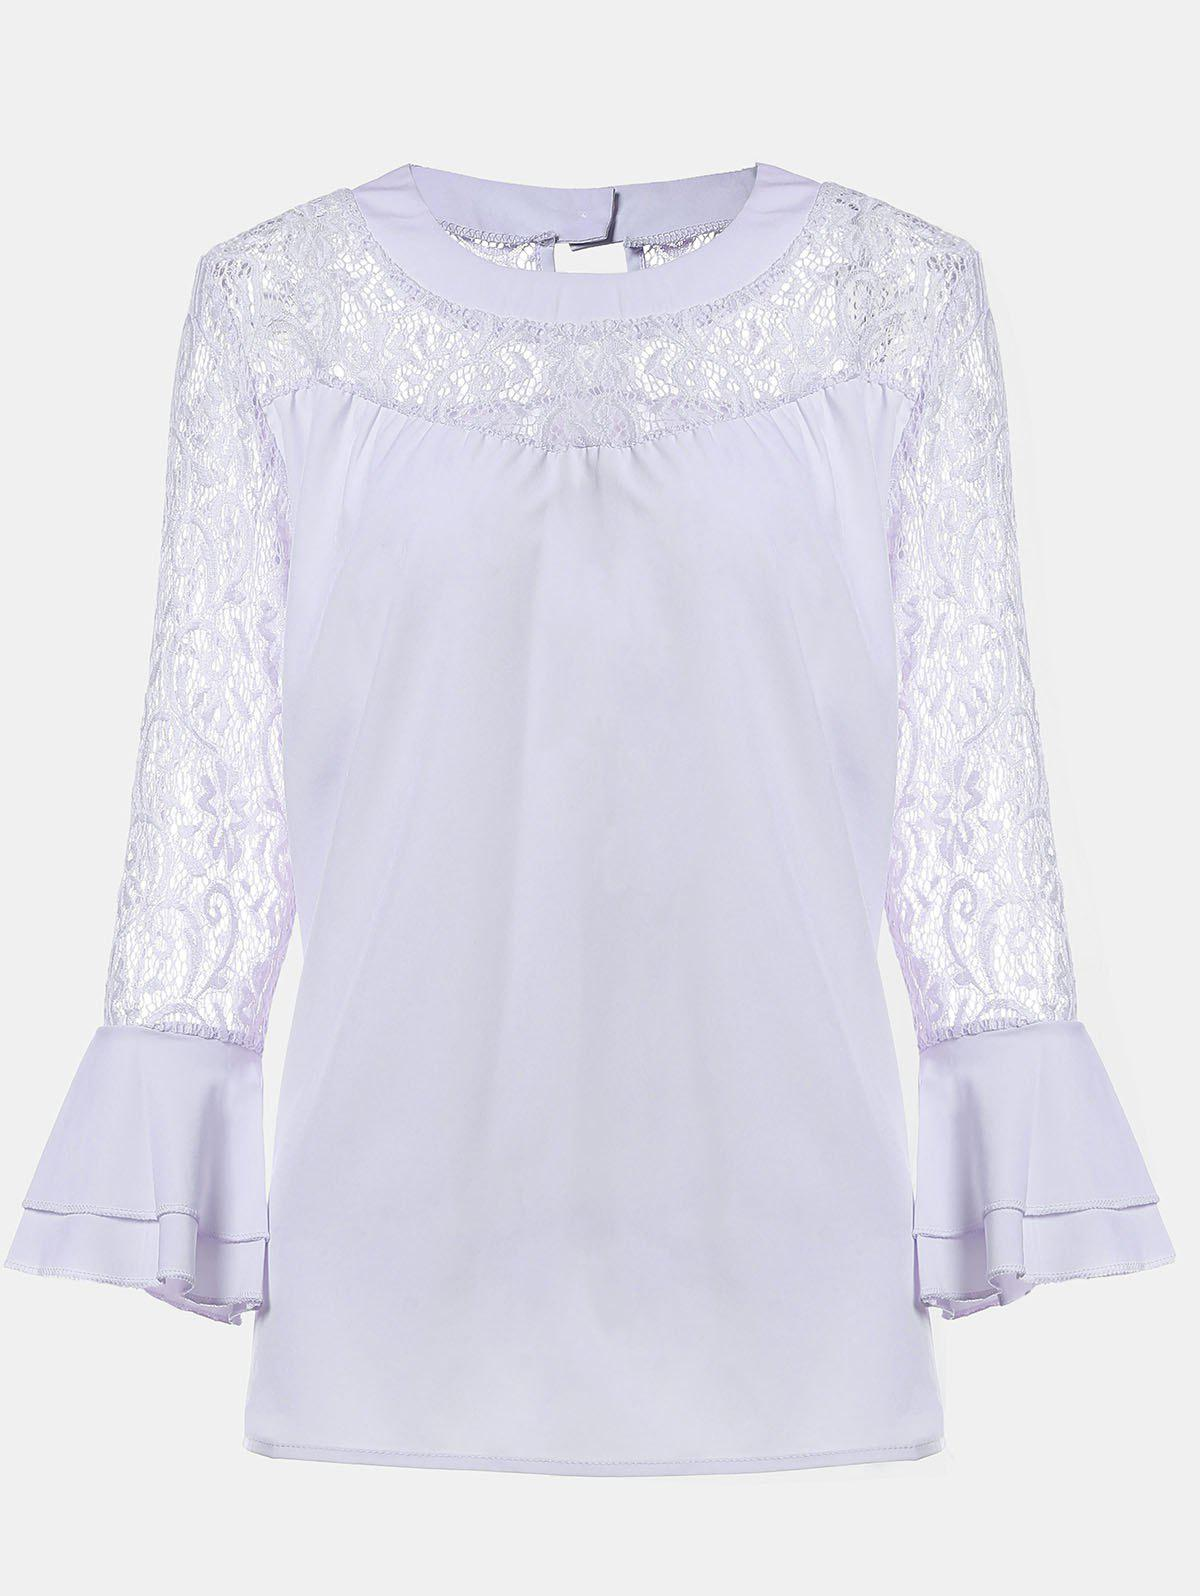 Online Women's Casual Lace Patchwork Chiffon  Tops